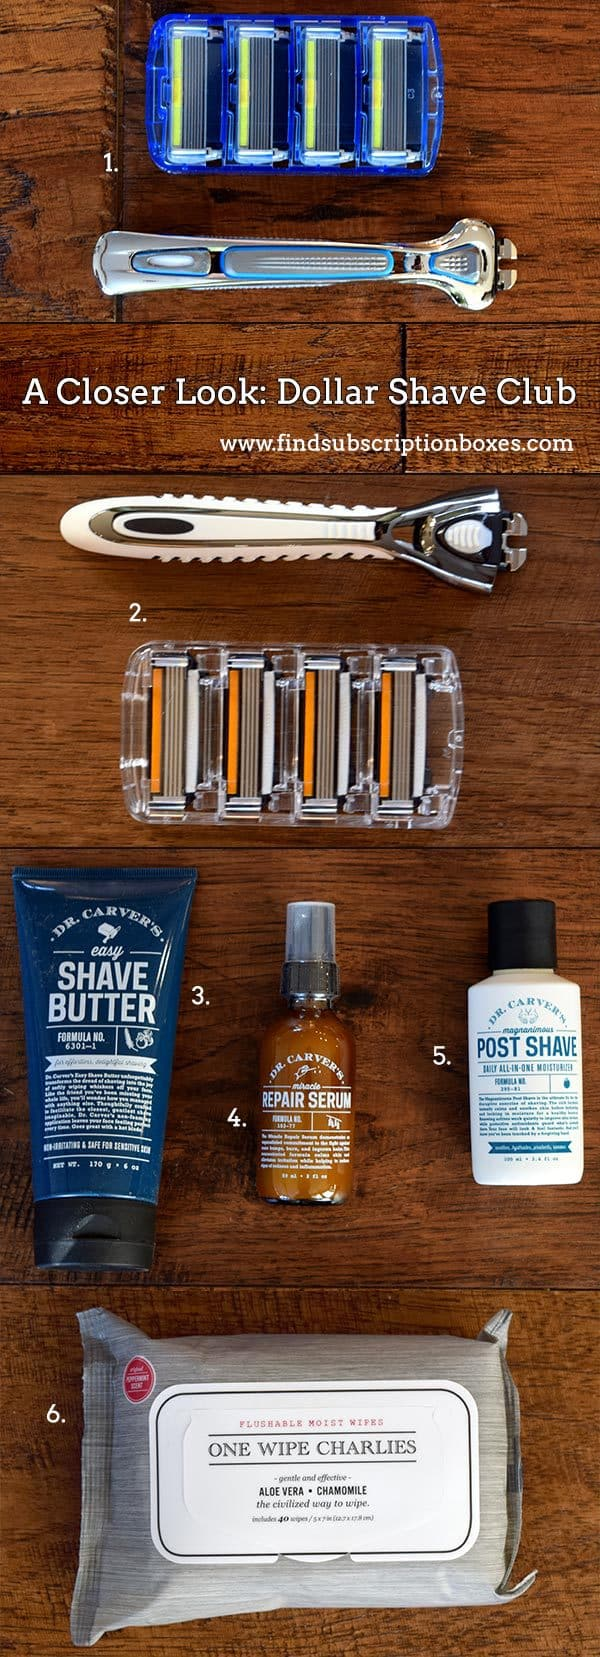 Dollar Shave Club Review - Inside the Box